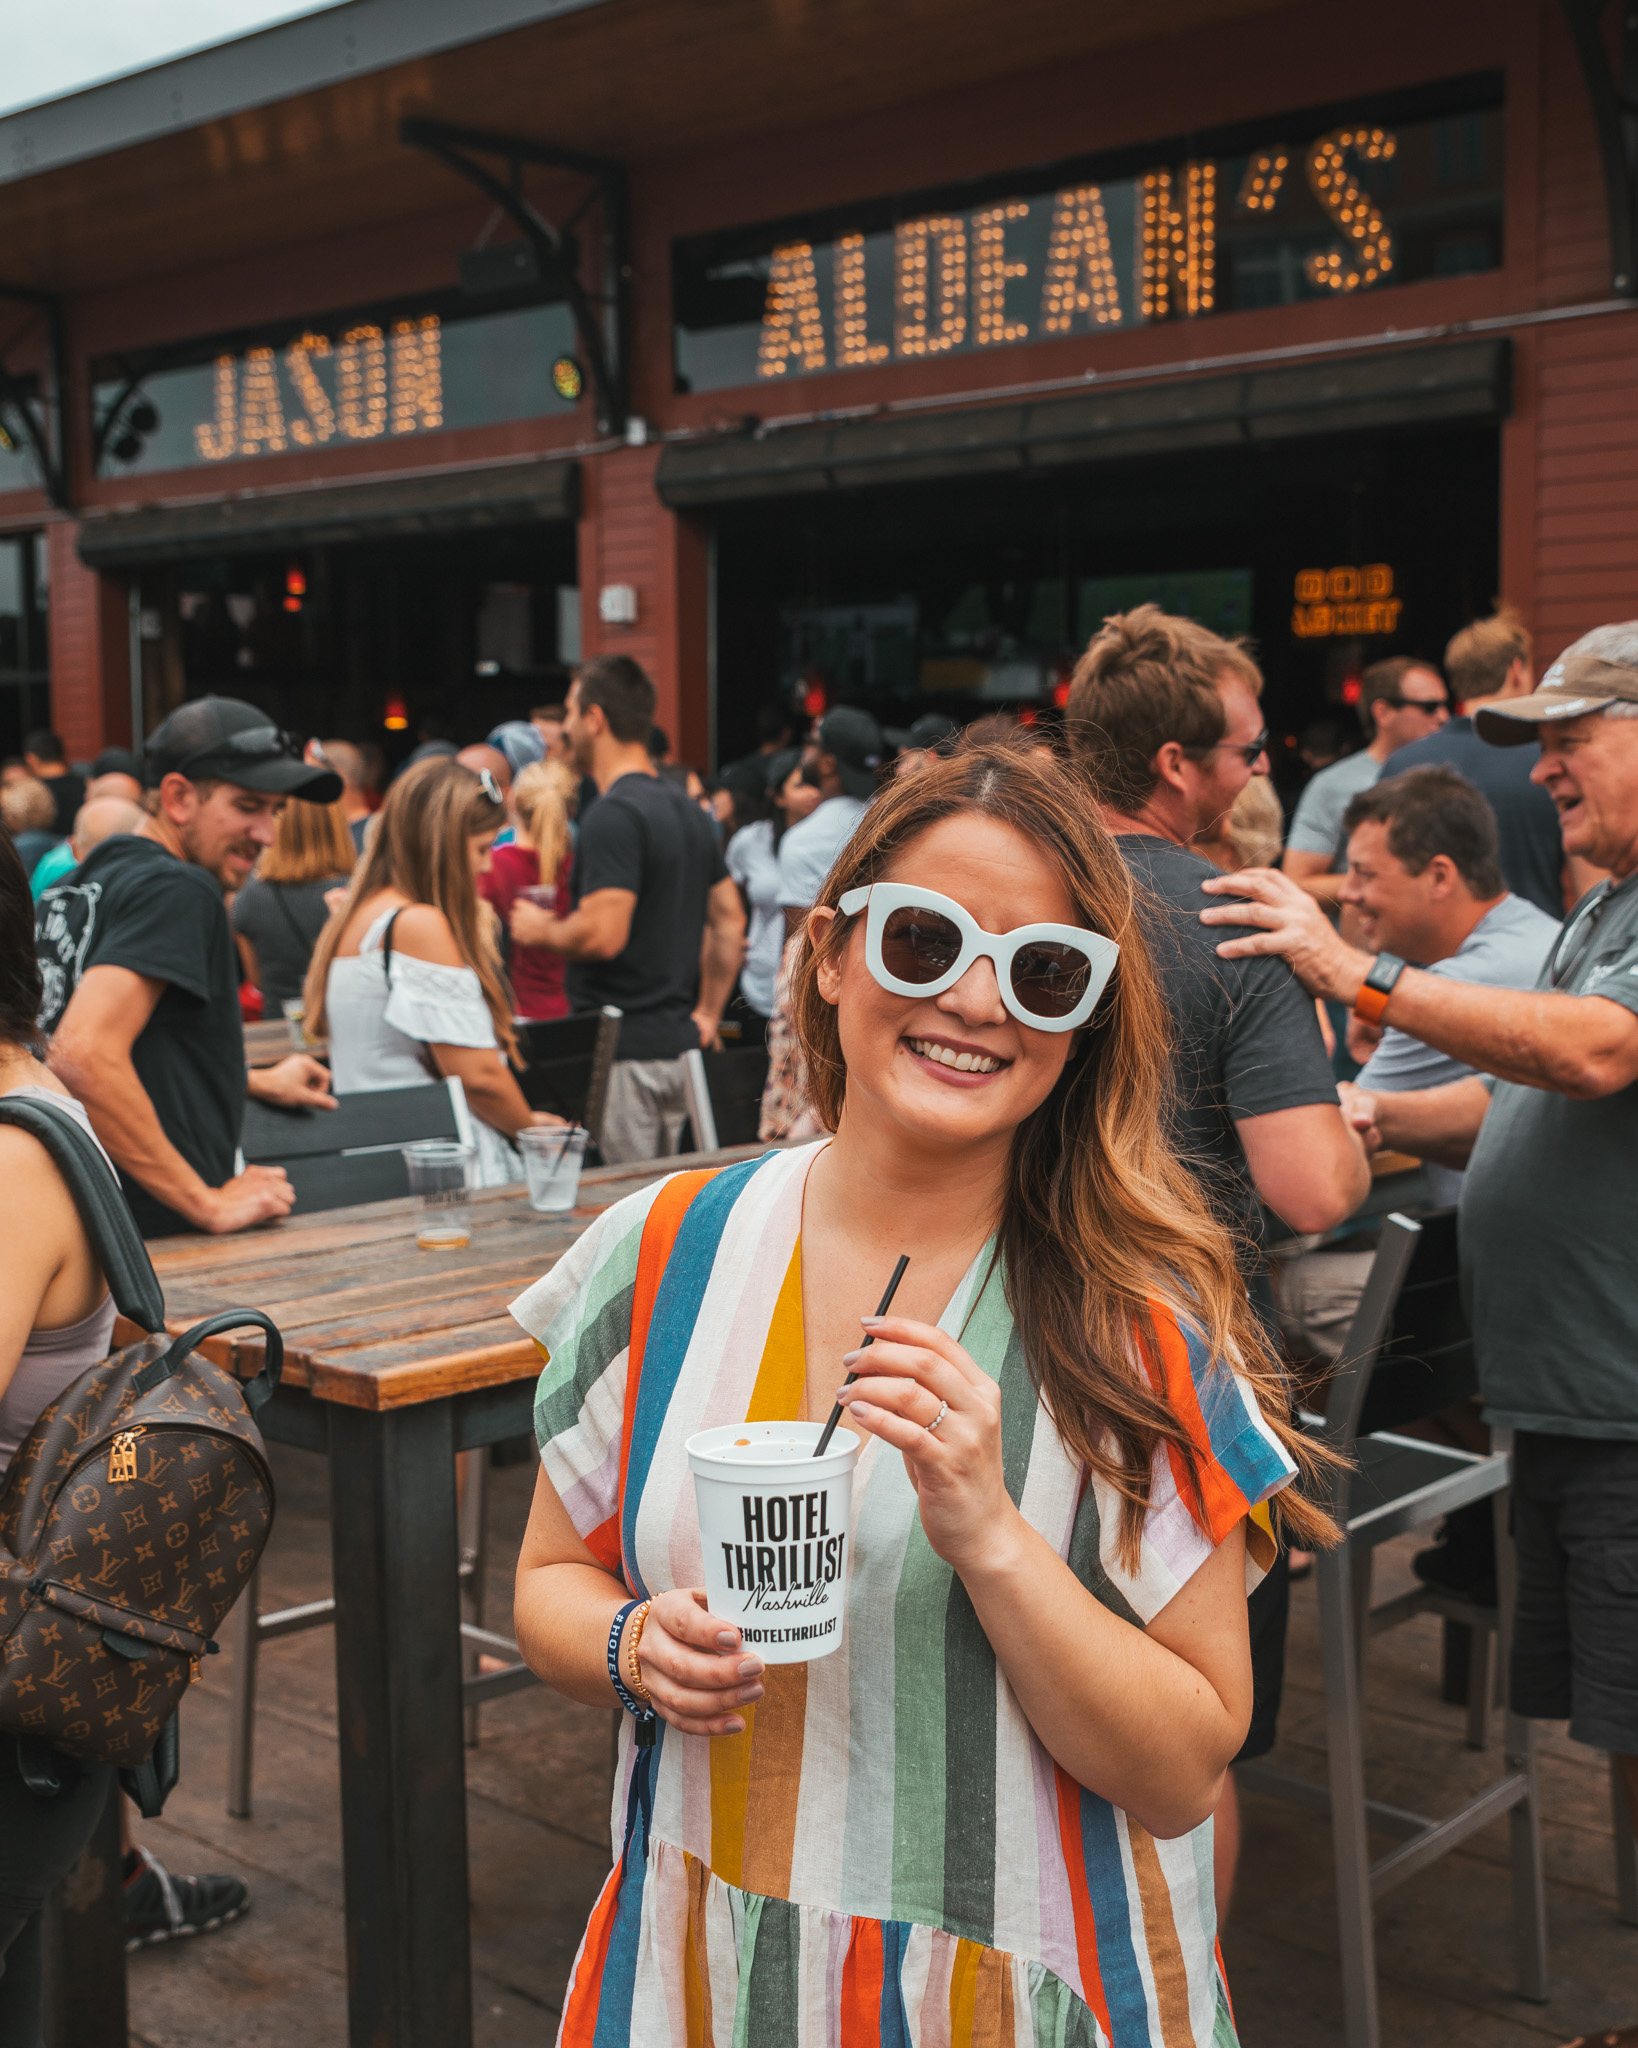 Hotel Thrillist Nashville at Jason Aldean's Bar // A Weekend at Hotel Thrillist #readysetjetset